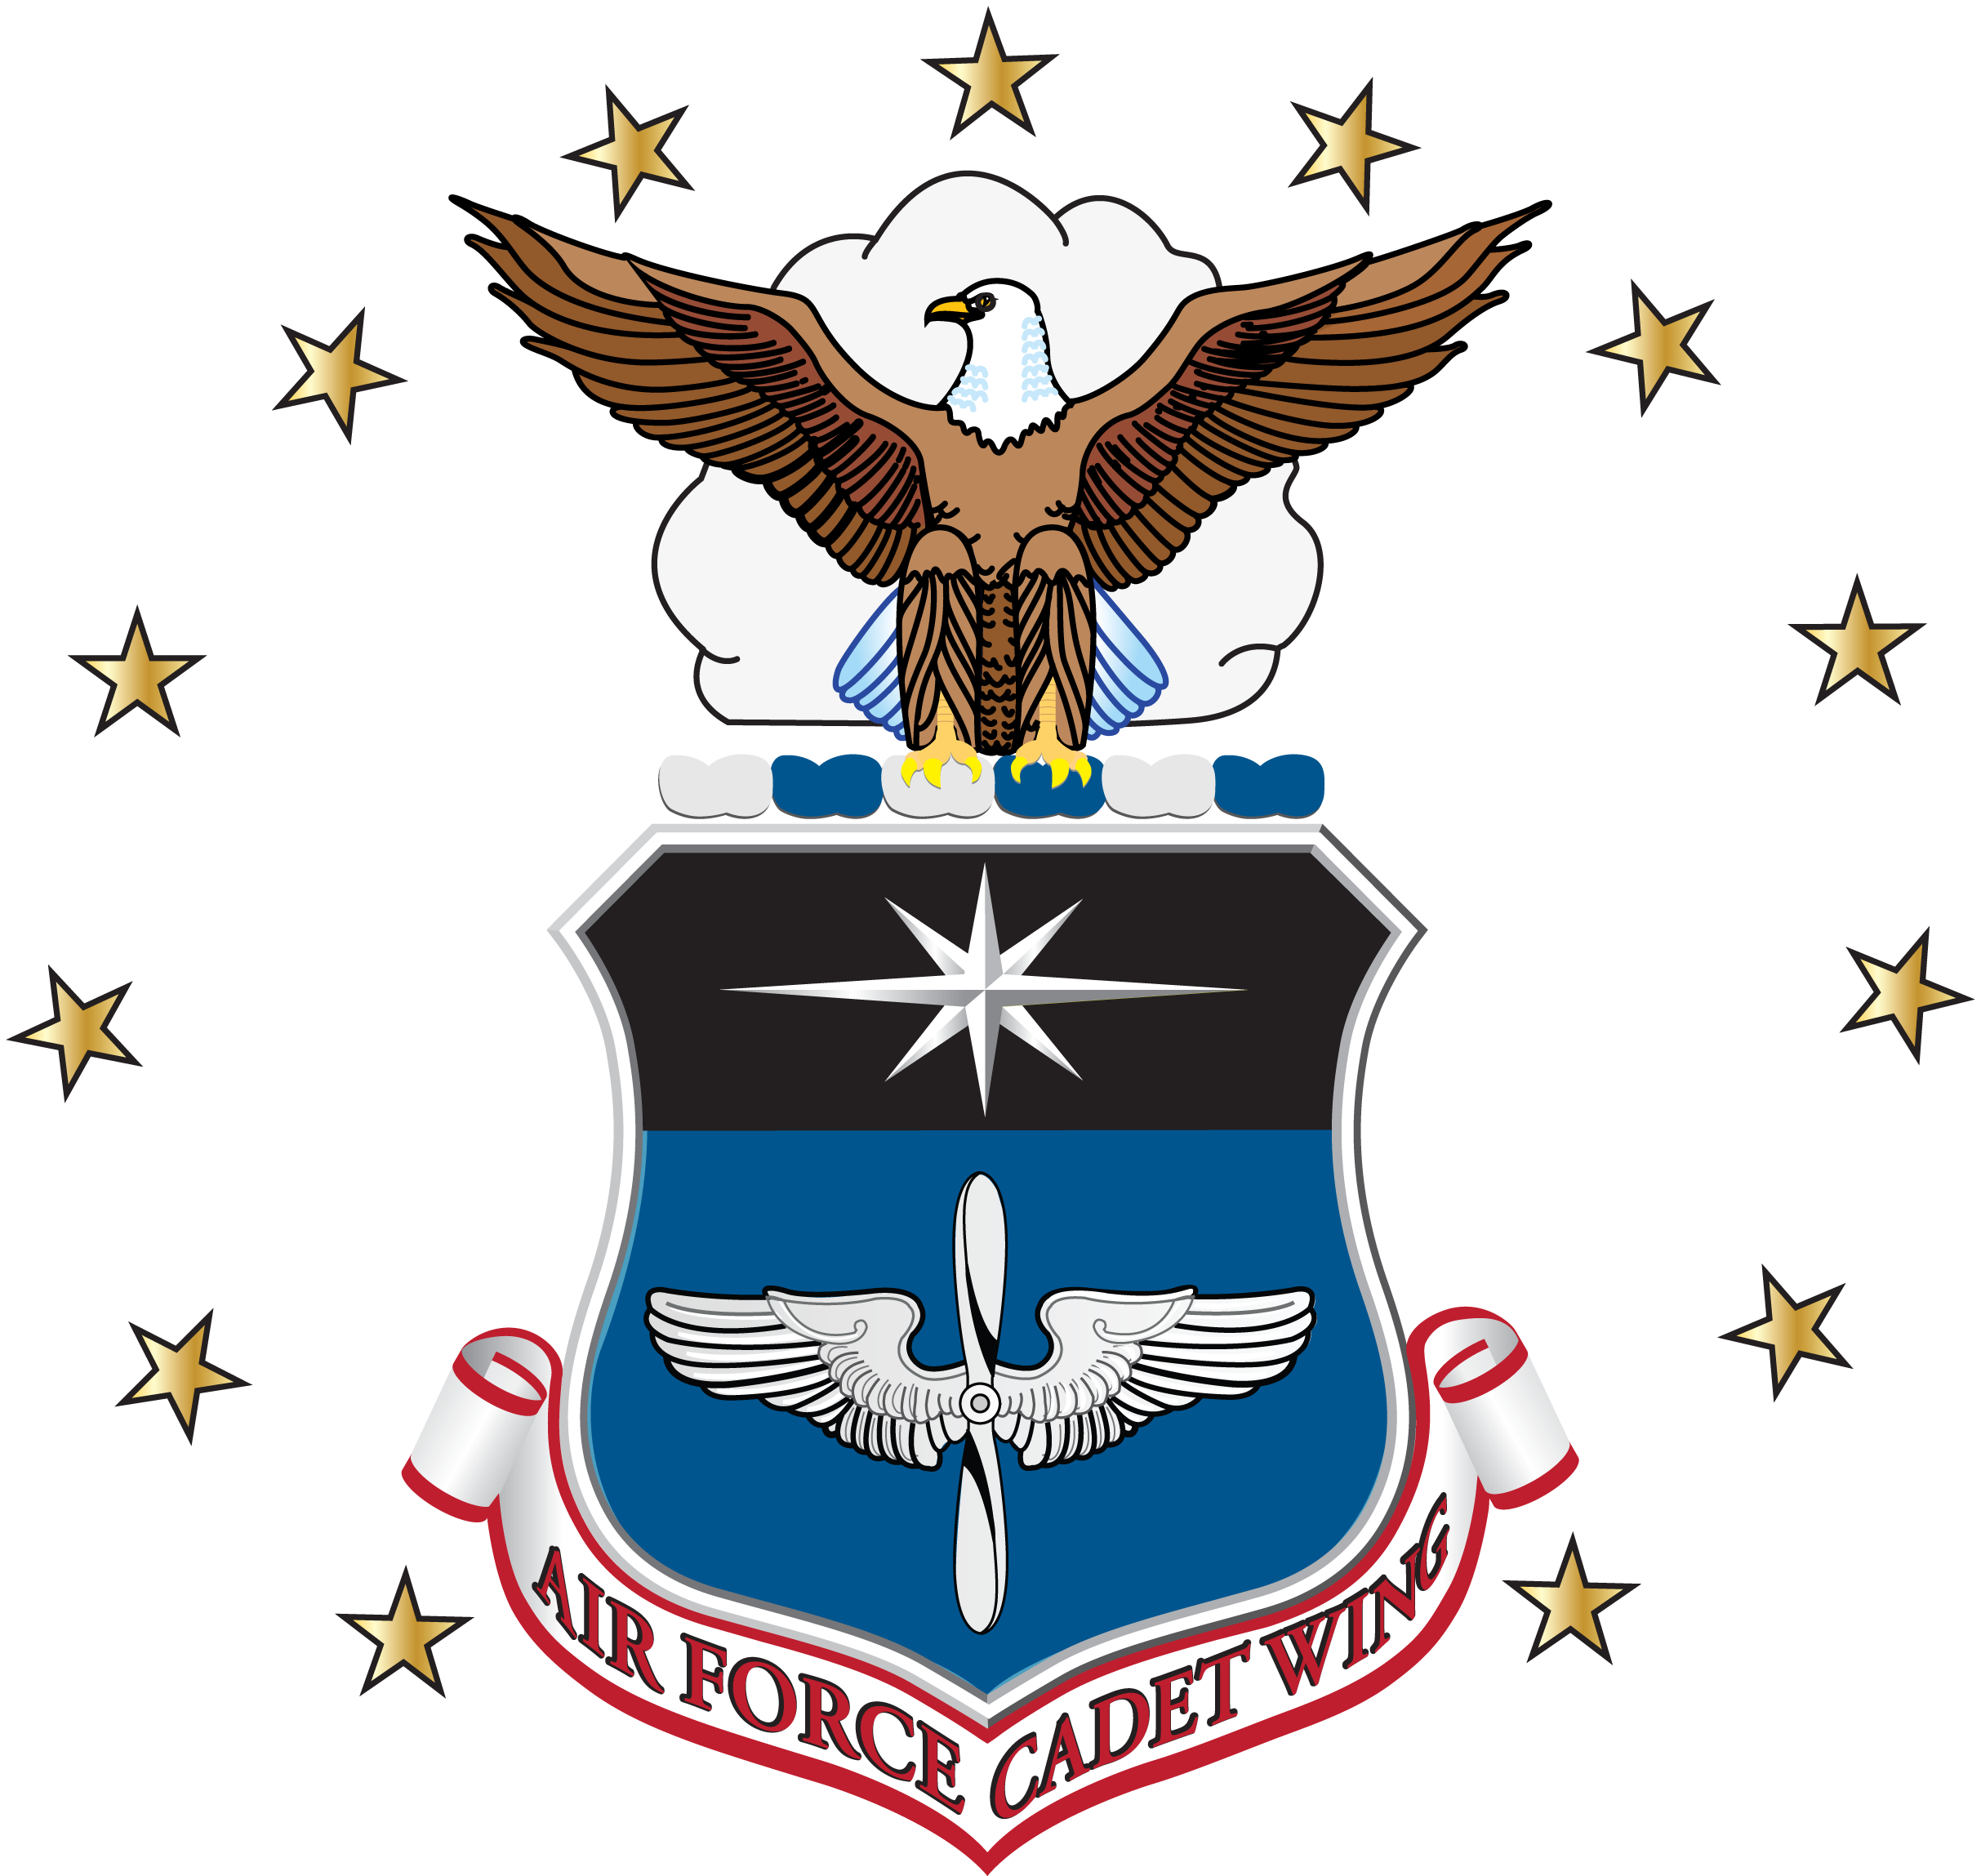 United States Air Force Academy Cadet Wing.